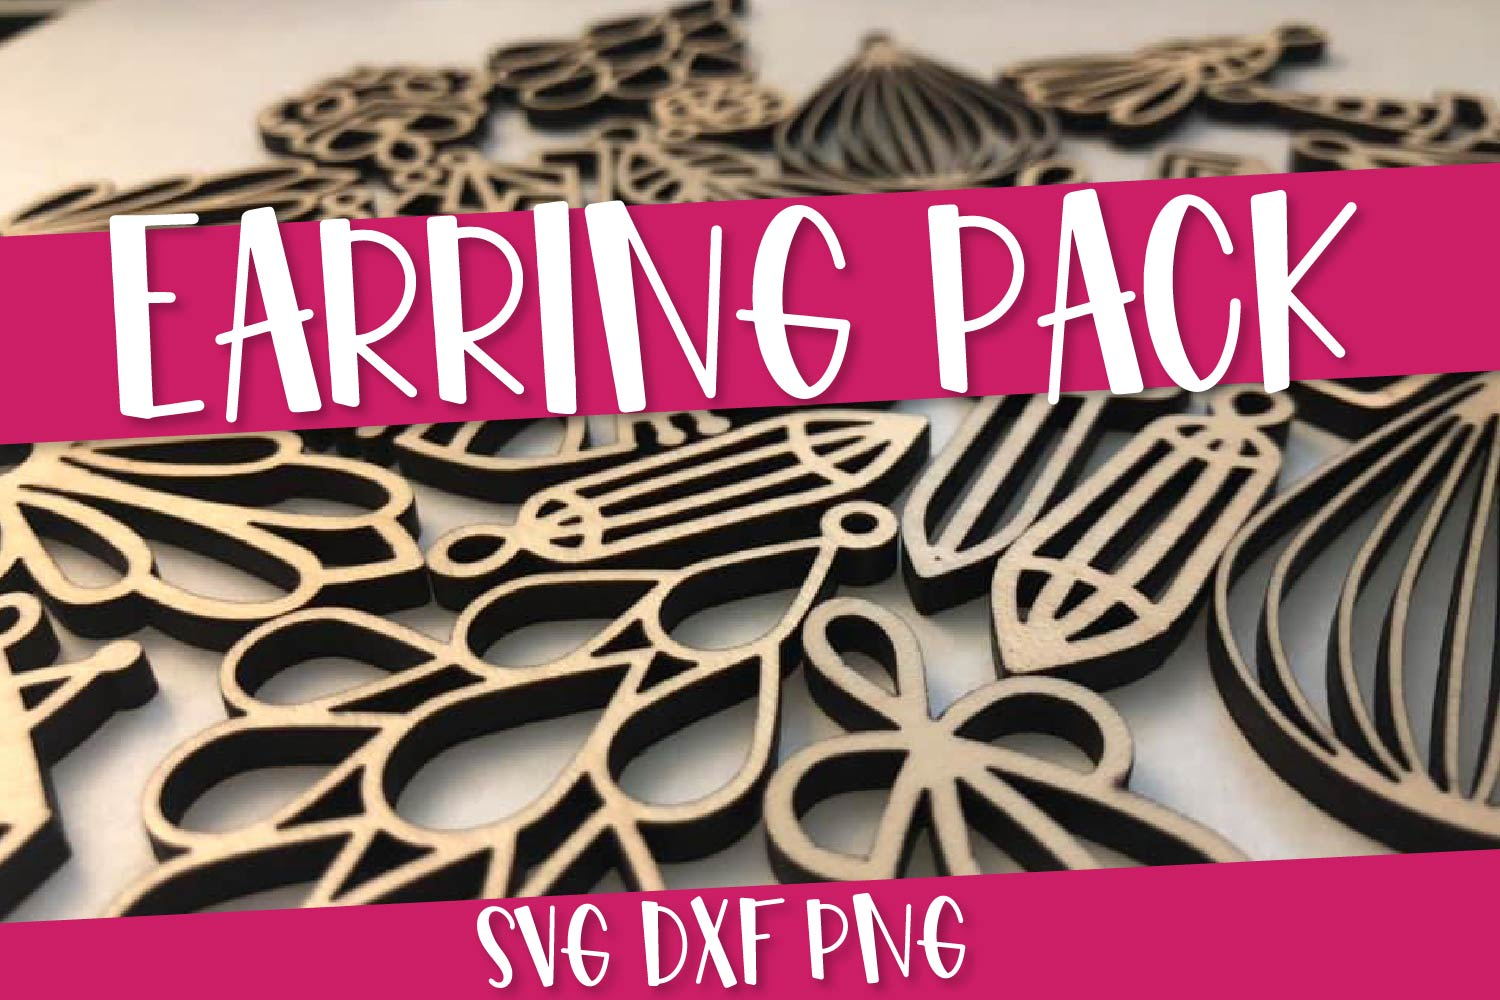 Earring SVG Bundle Pack - 12 Hand Drawn Earrings example image 1